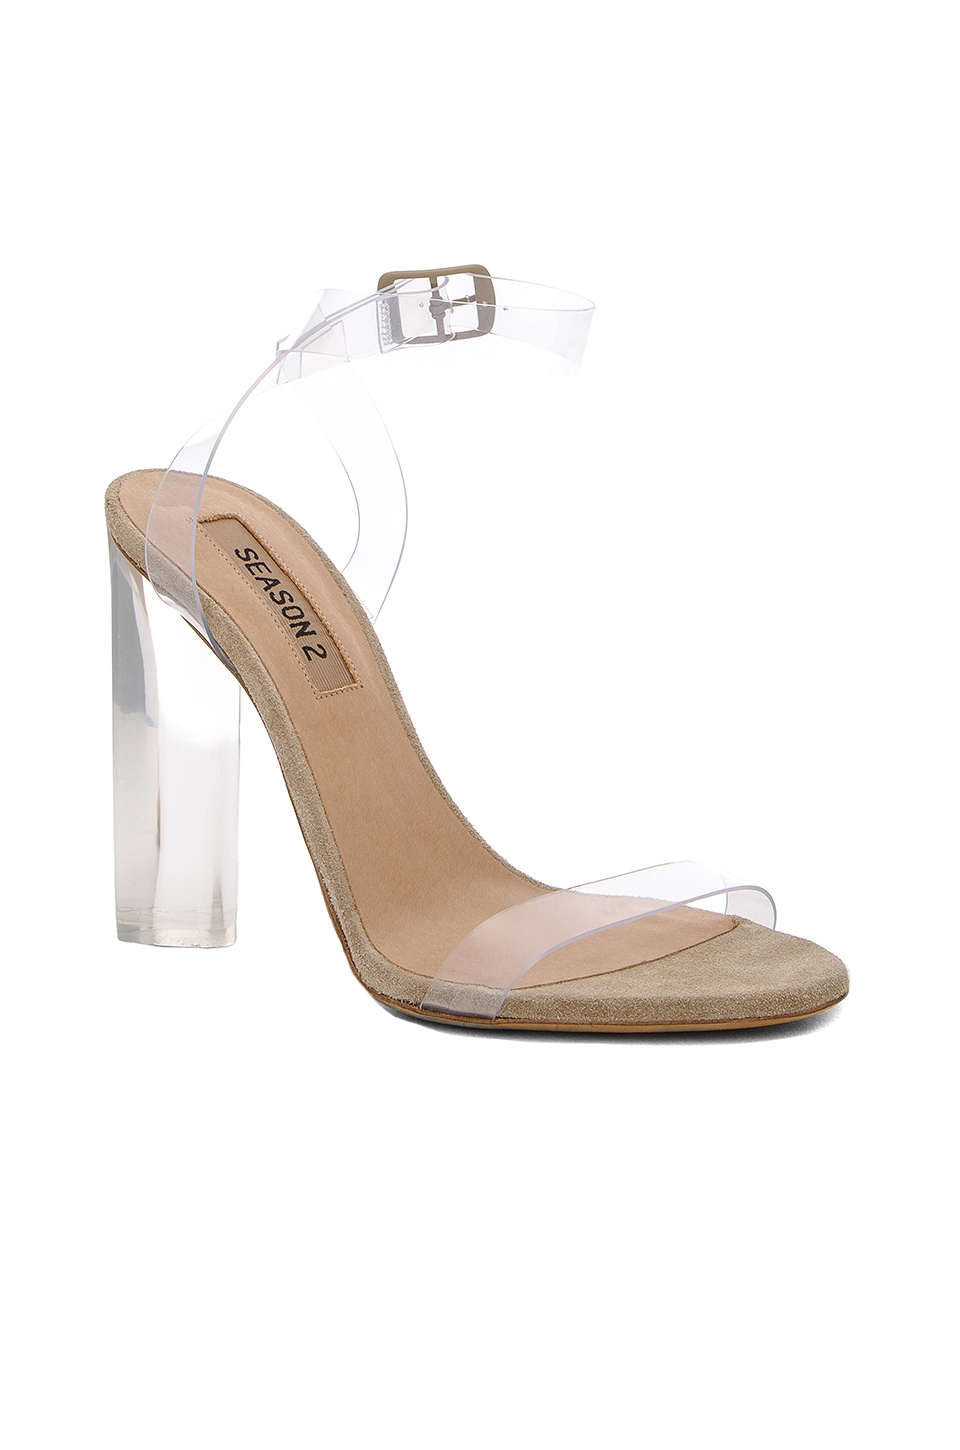 Buy Original YEEZY Season 2 Lucite Heel at Indonesia